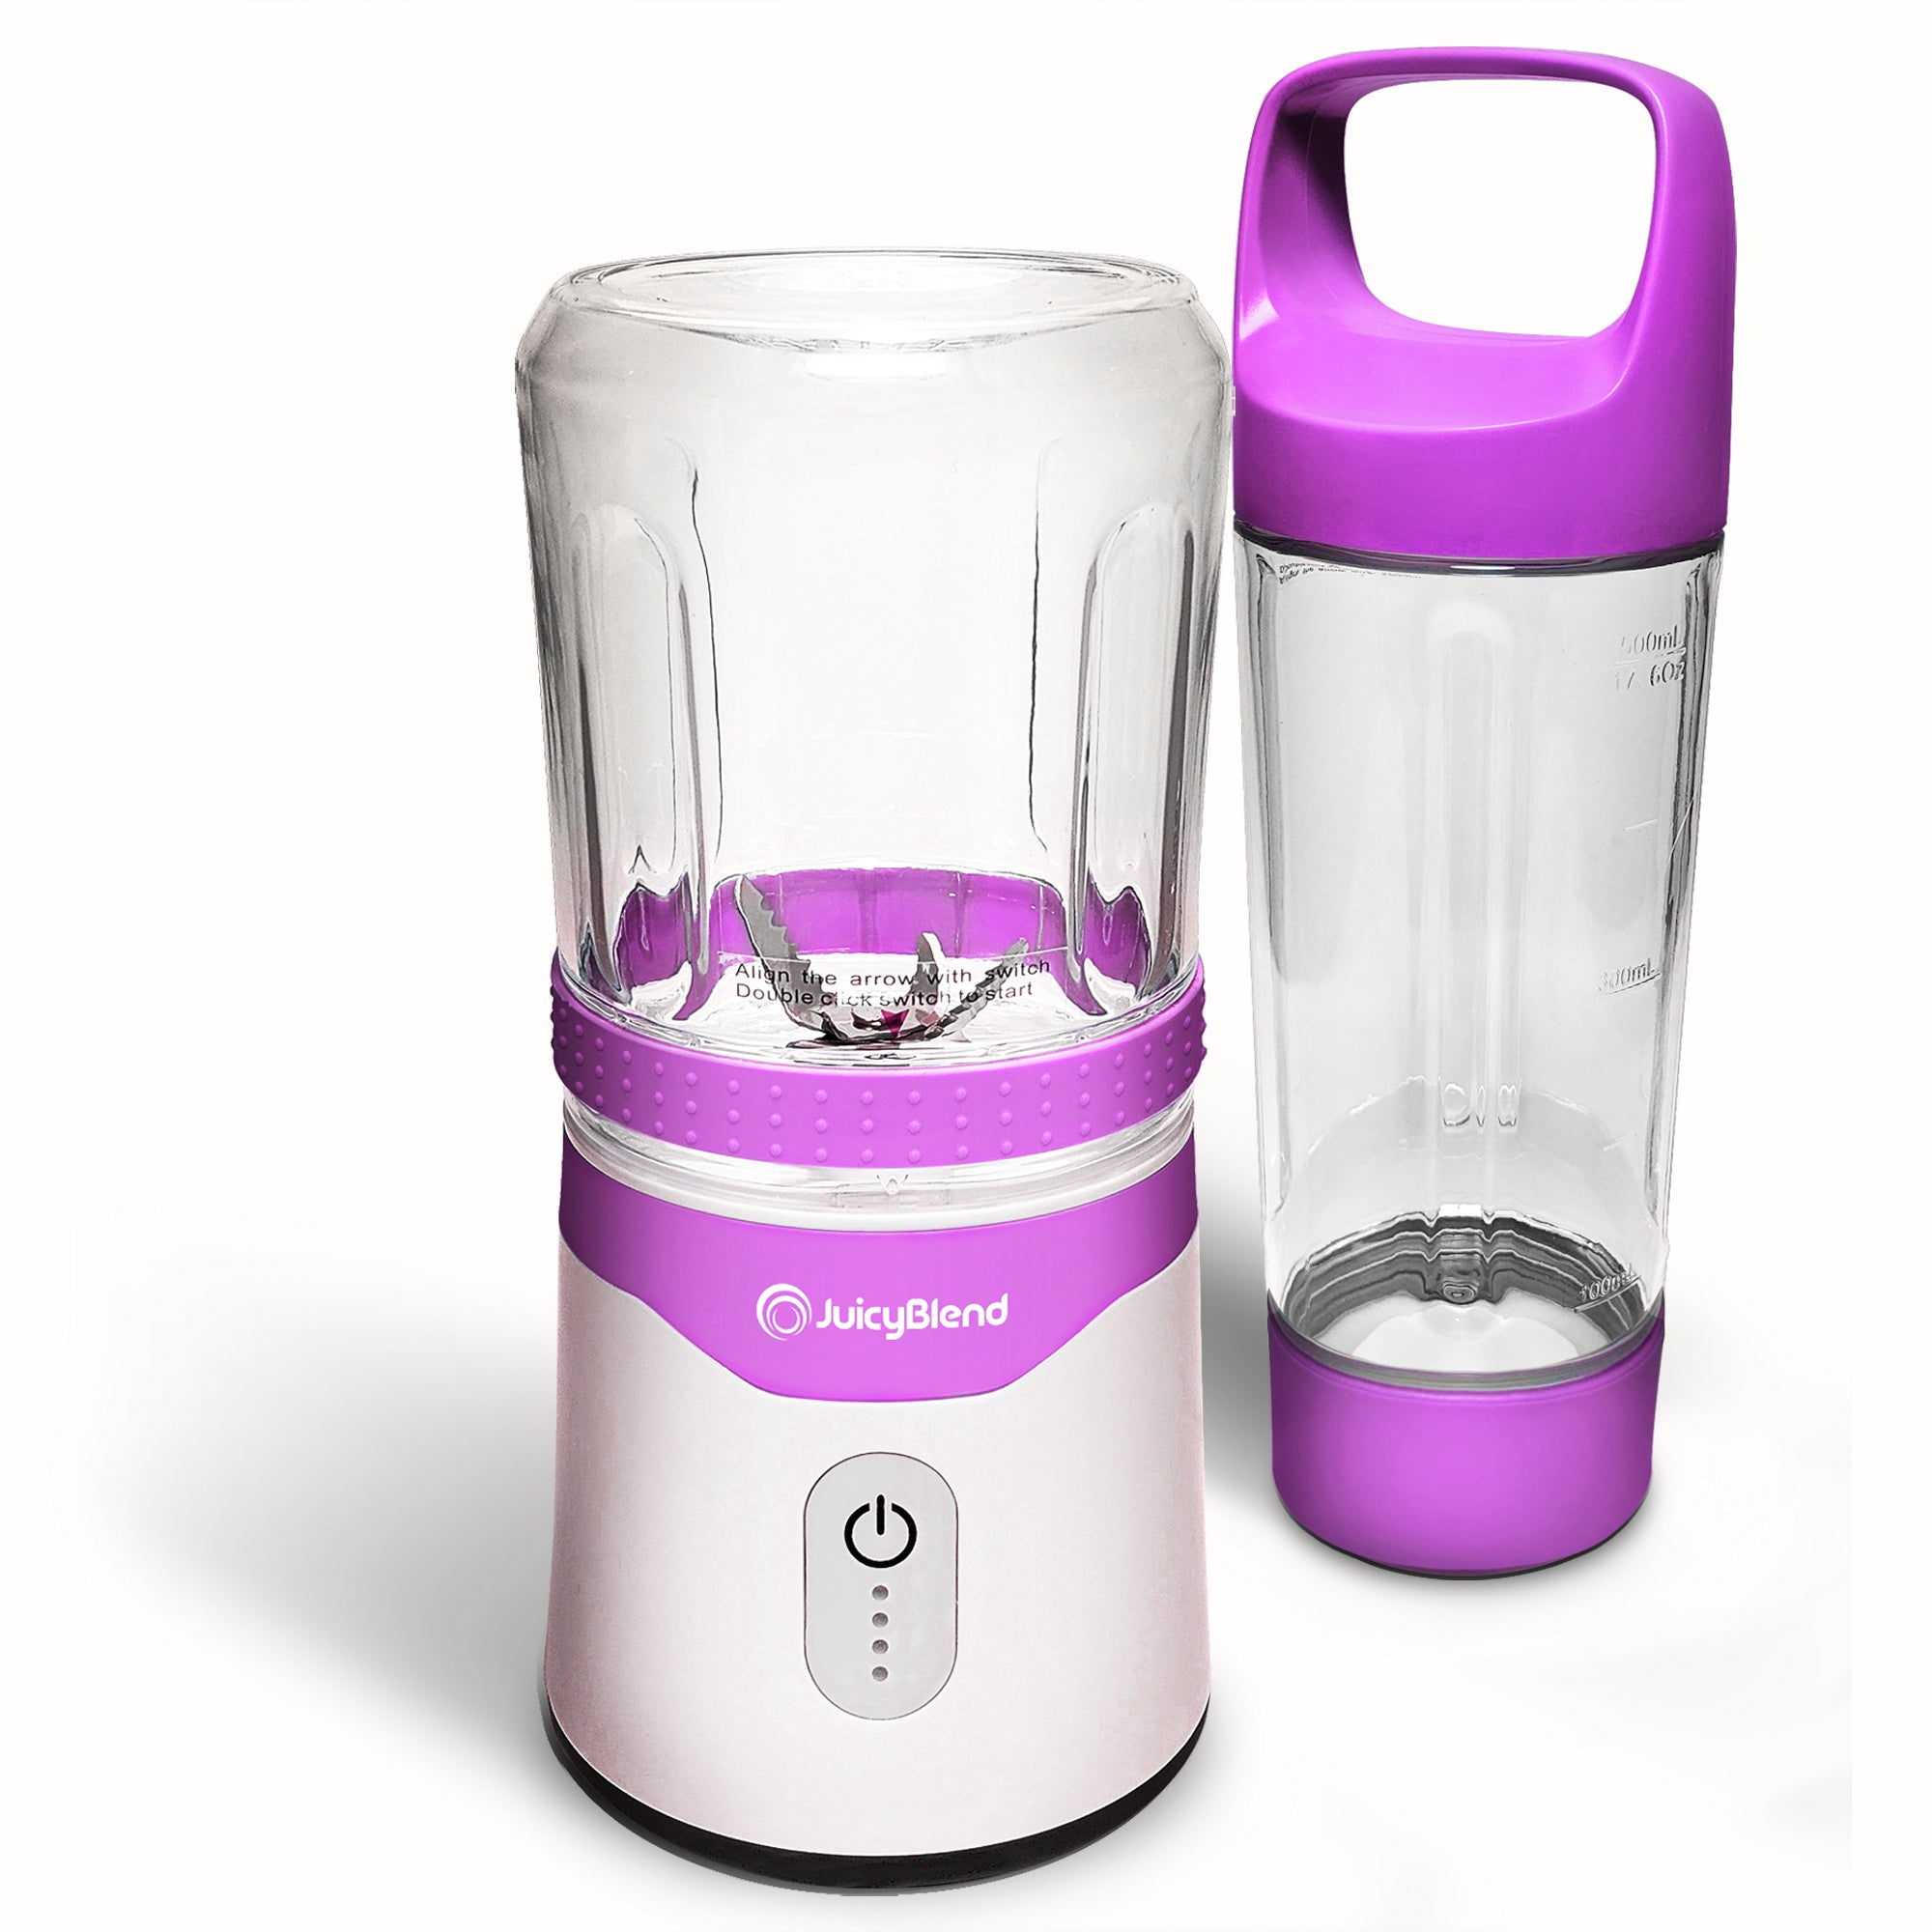 JuicyBlend purple and white portable blender with 500ML clear plastic jar with purple lid and 300ML clear plastic jar with blender motor base.